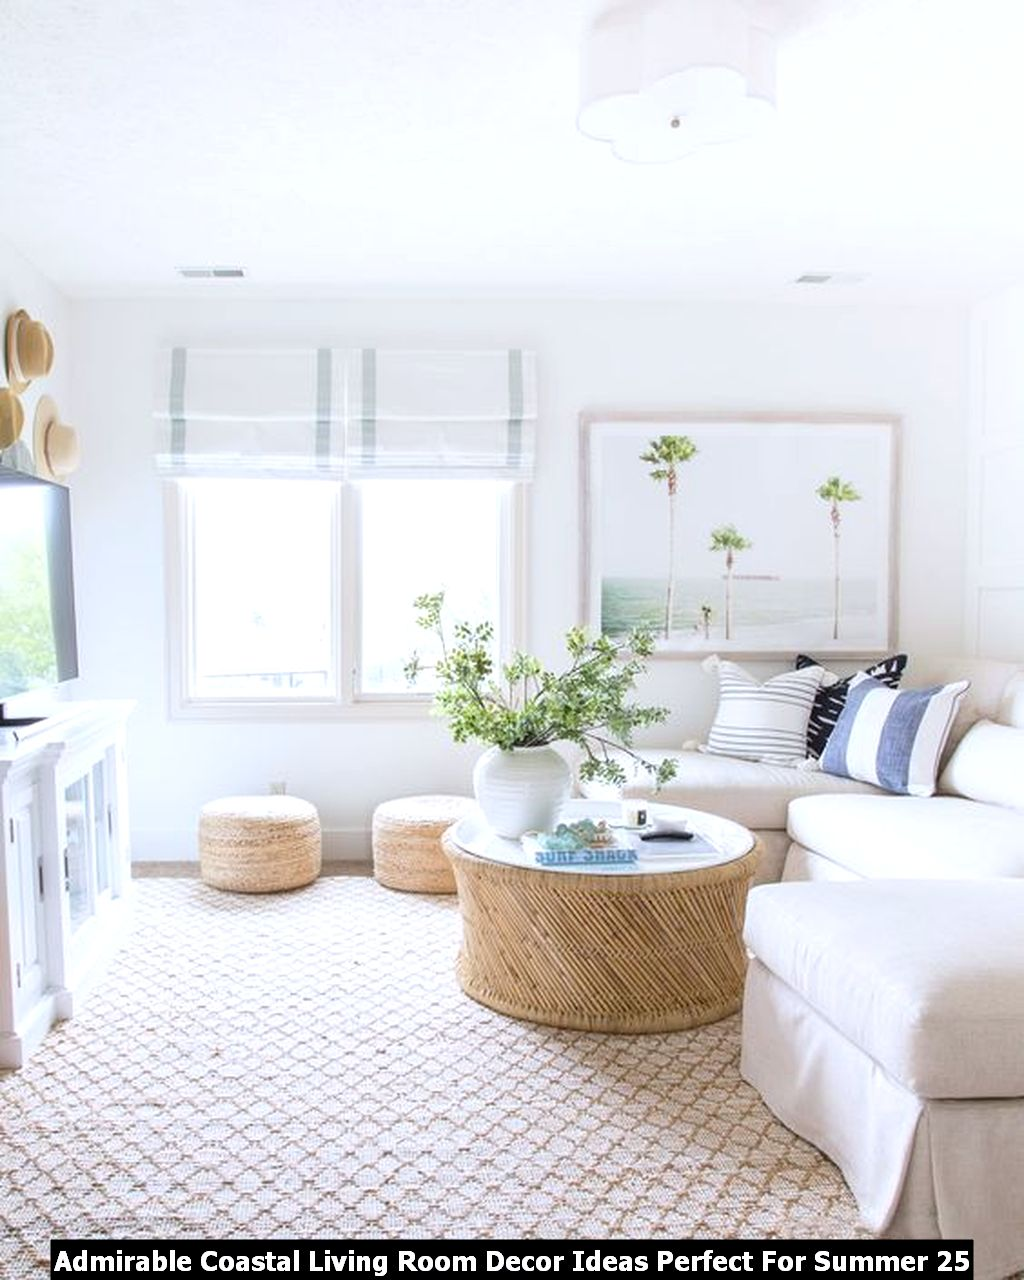 Admirable Coastal Living Room Decor Ideas Perfect For Summer 25